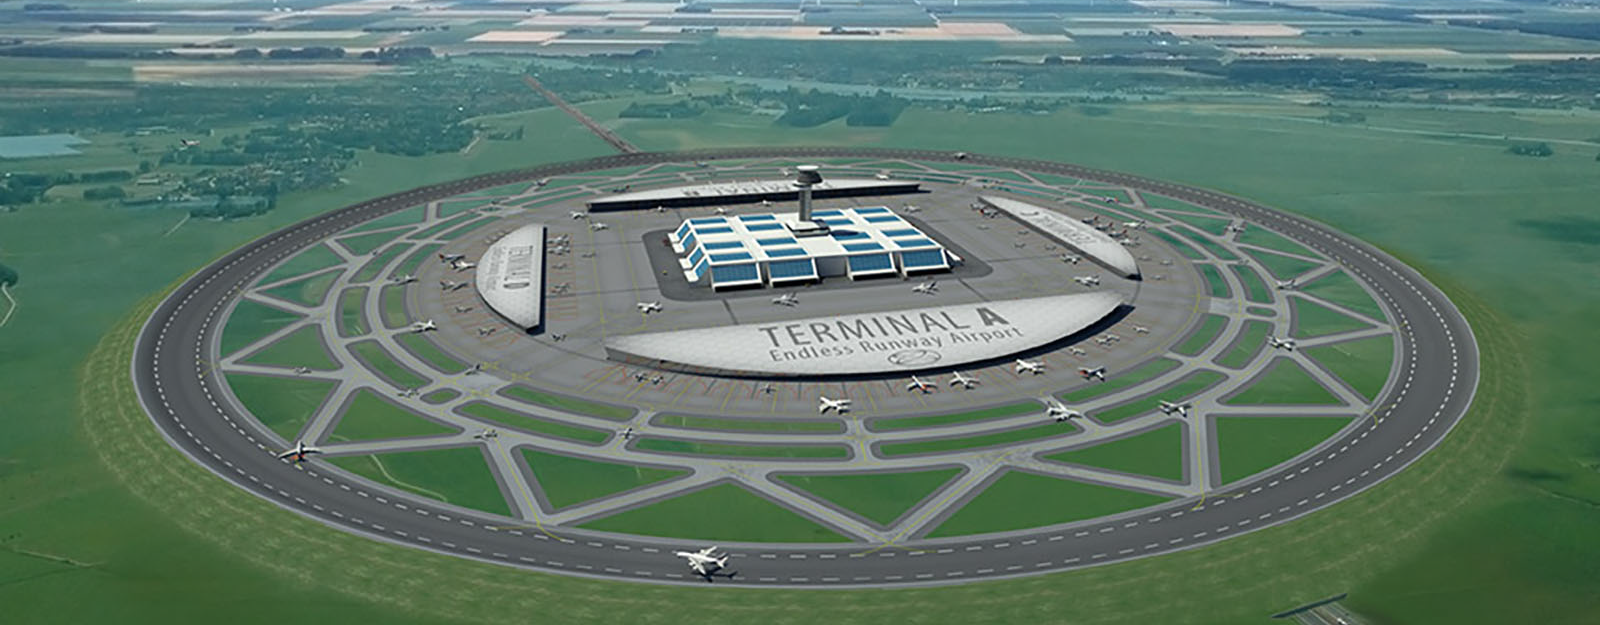 Dutch Concept for Circular Airport Runways - Core77